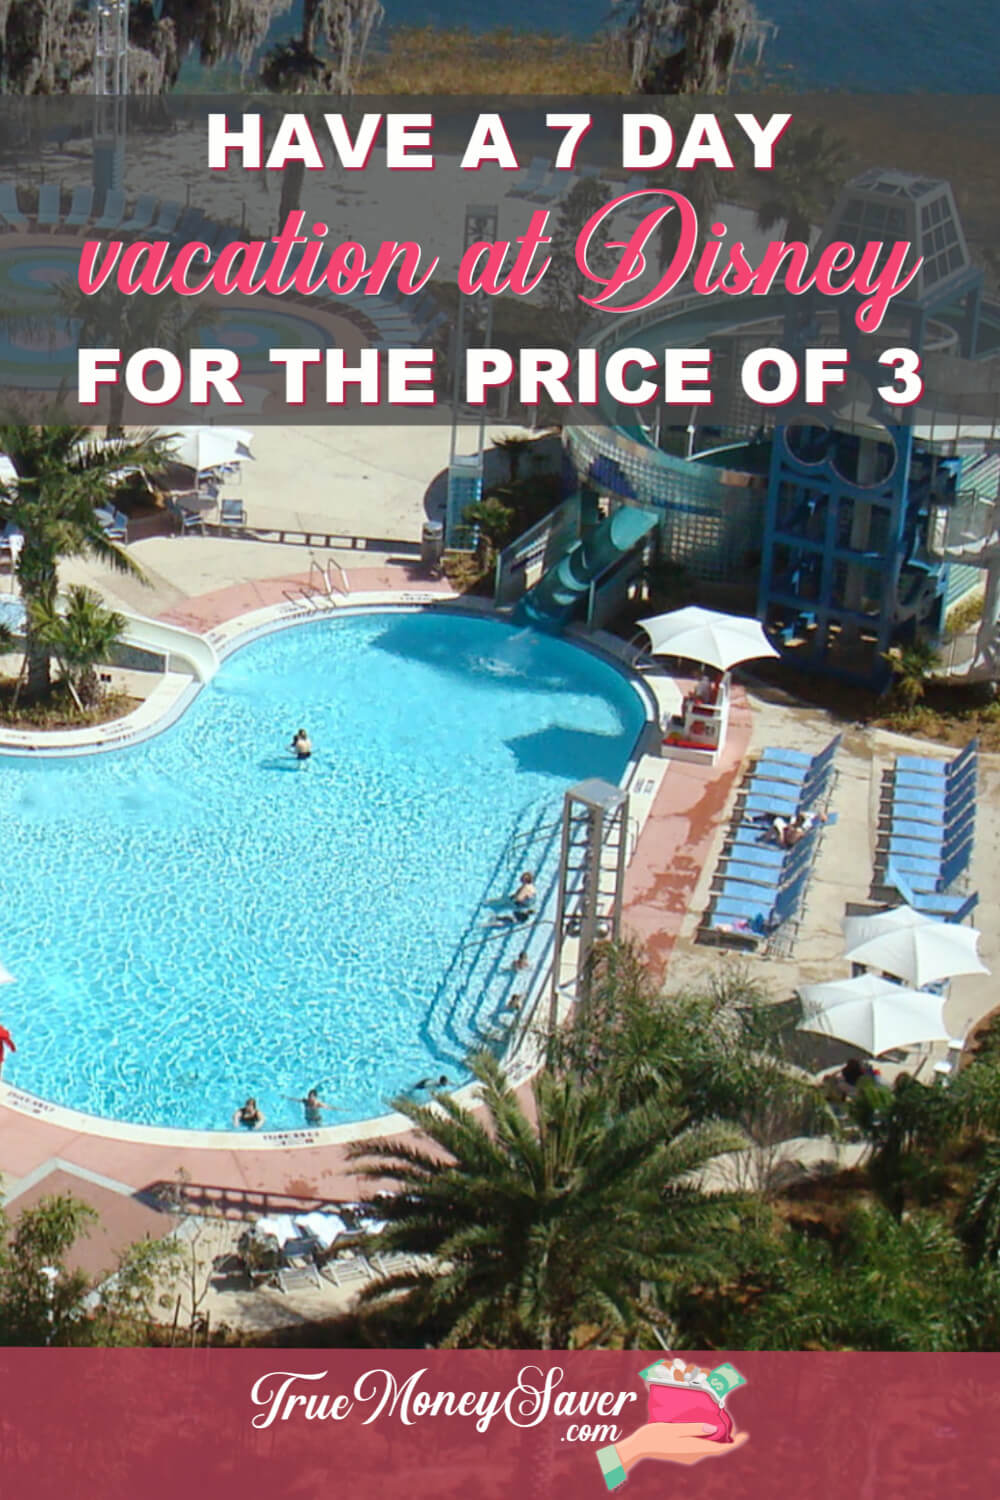 Are you wanting to take a week vacation to Disney World but don\'t don\'t think you can afford an entire week? Here\'s how you can enjoy a 7 Day vacation for the price of 3! #truemoneysaver #disney #disneyworld #savings #vacation